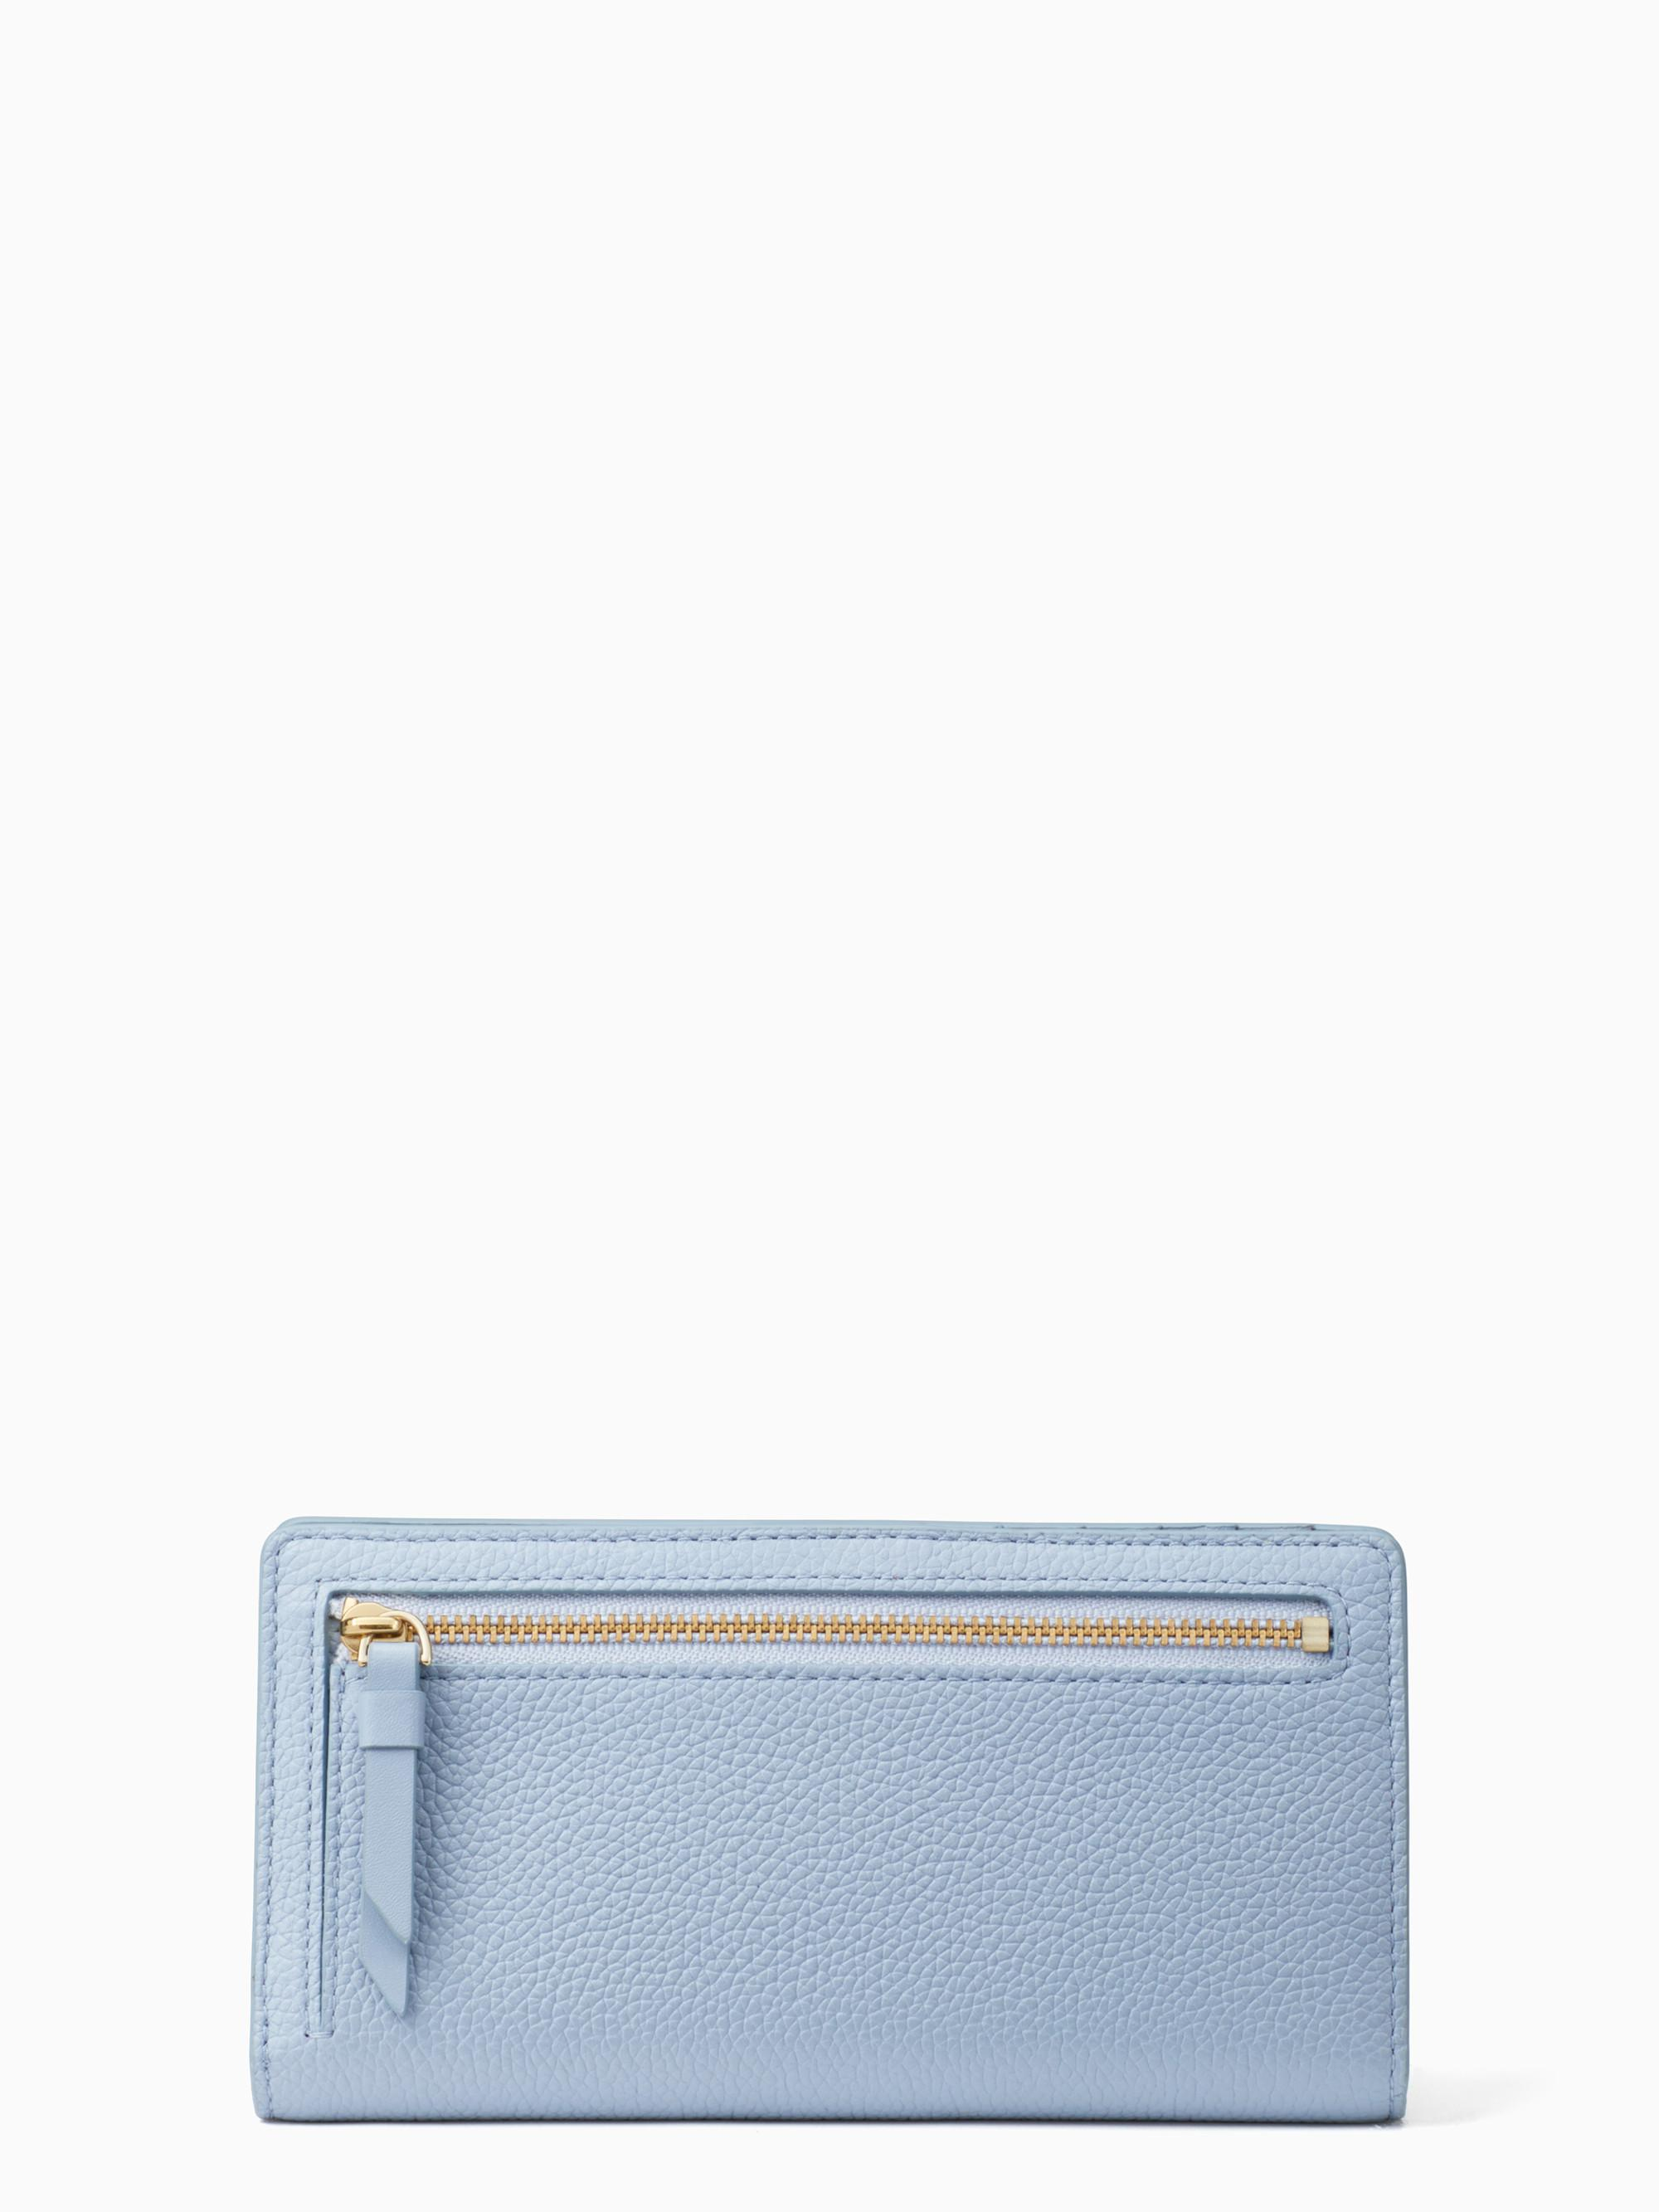 614a8331b1fd Kate Spade Blue Serrano Place Pearl Stacy